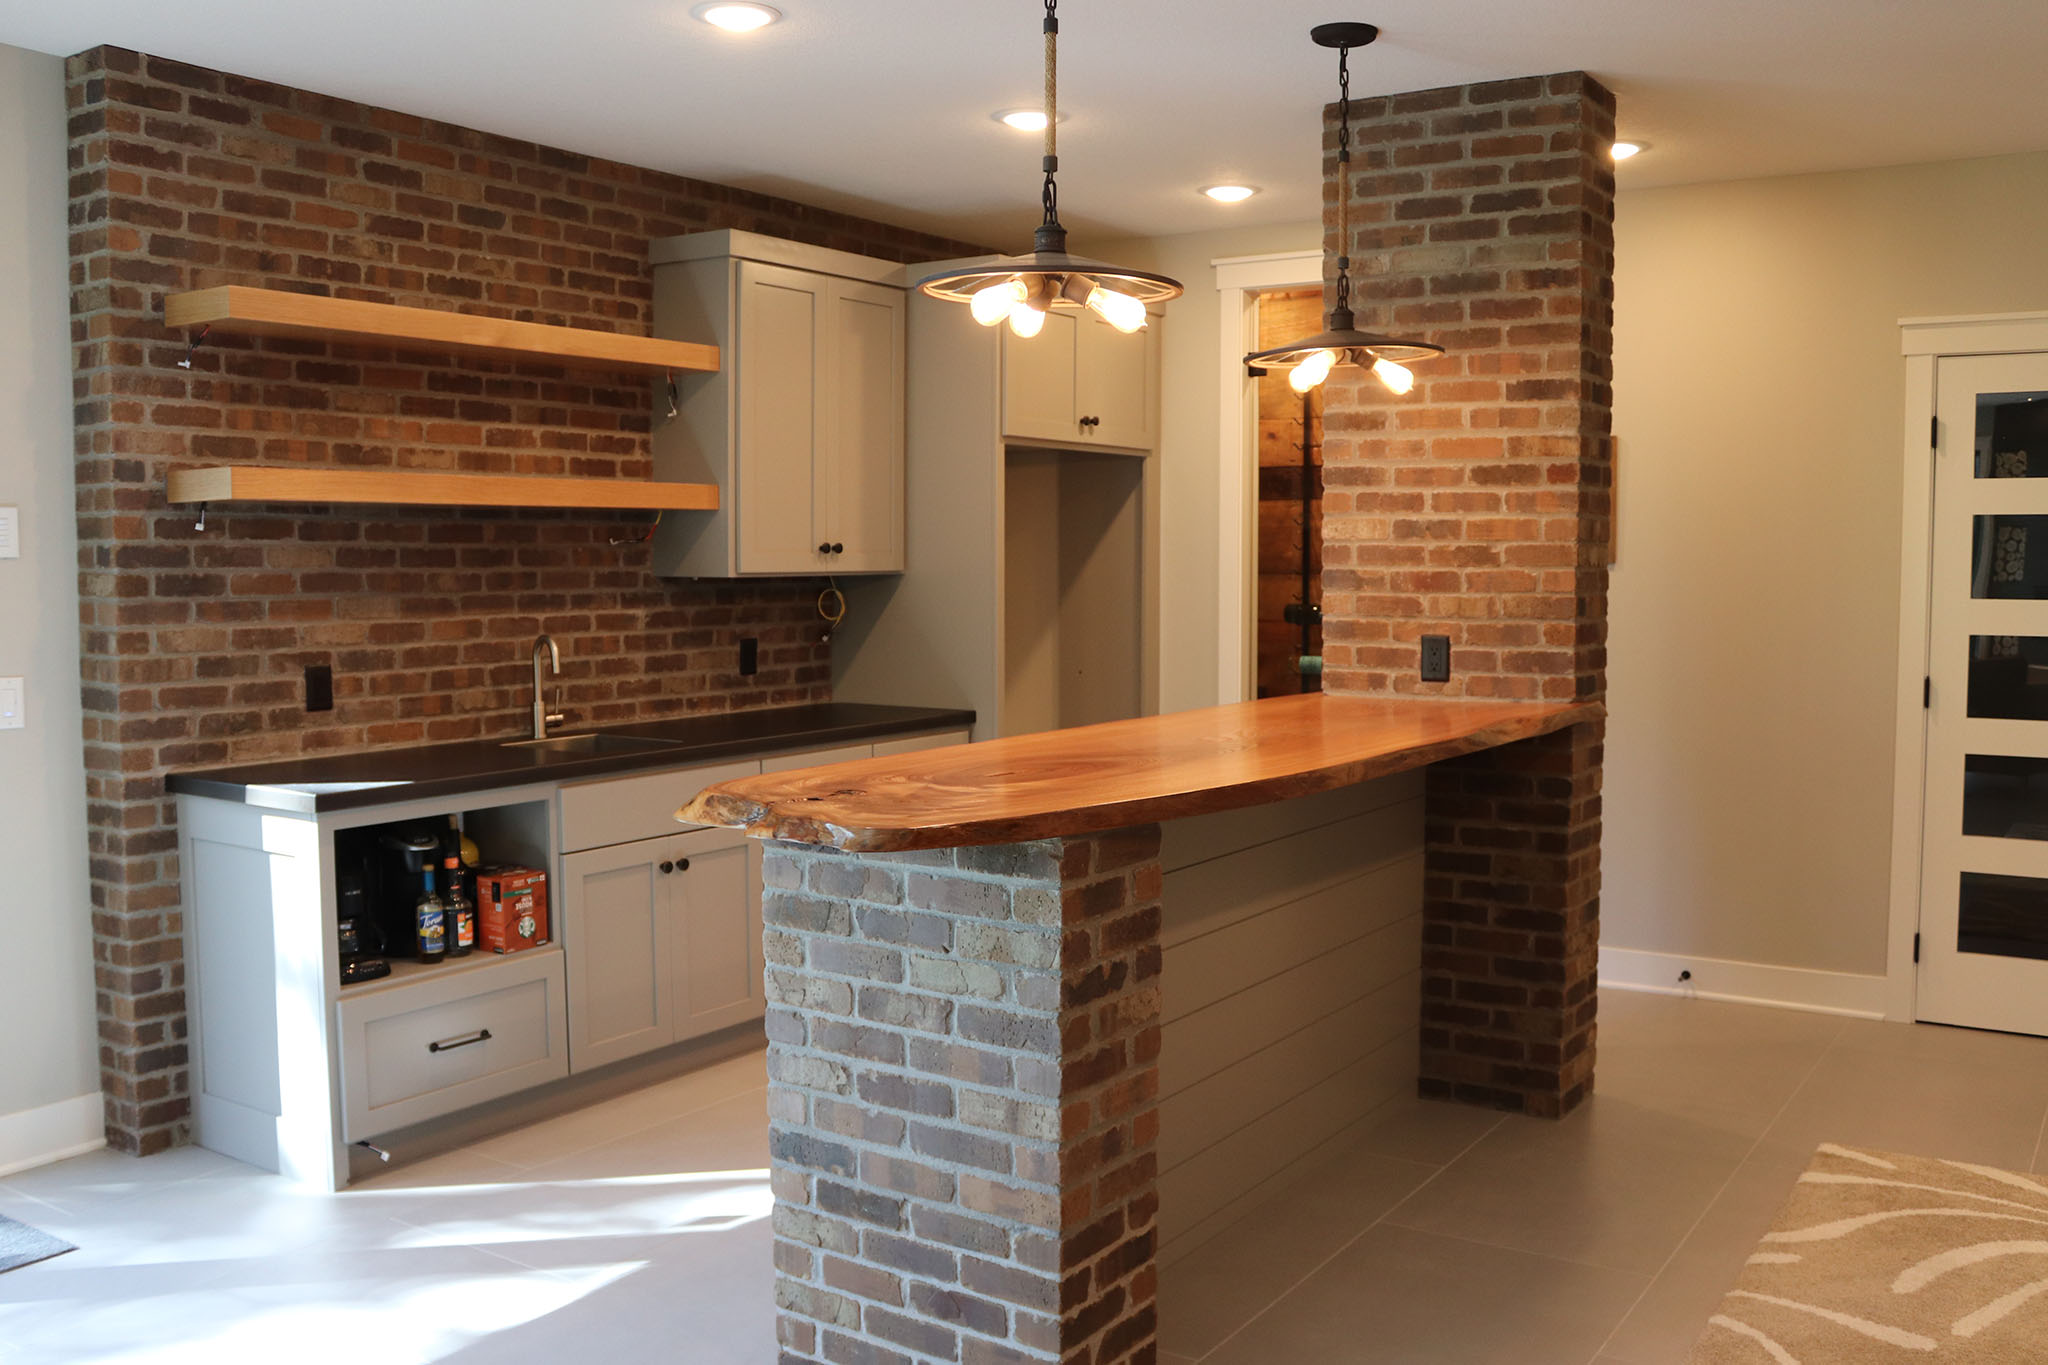 Basement bar area with brick accents, wood plank countertop, floating wood shelves, custom countertops and ceramic tile flooring